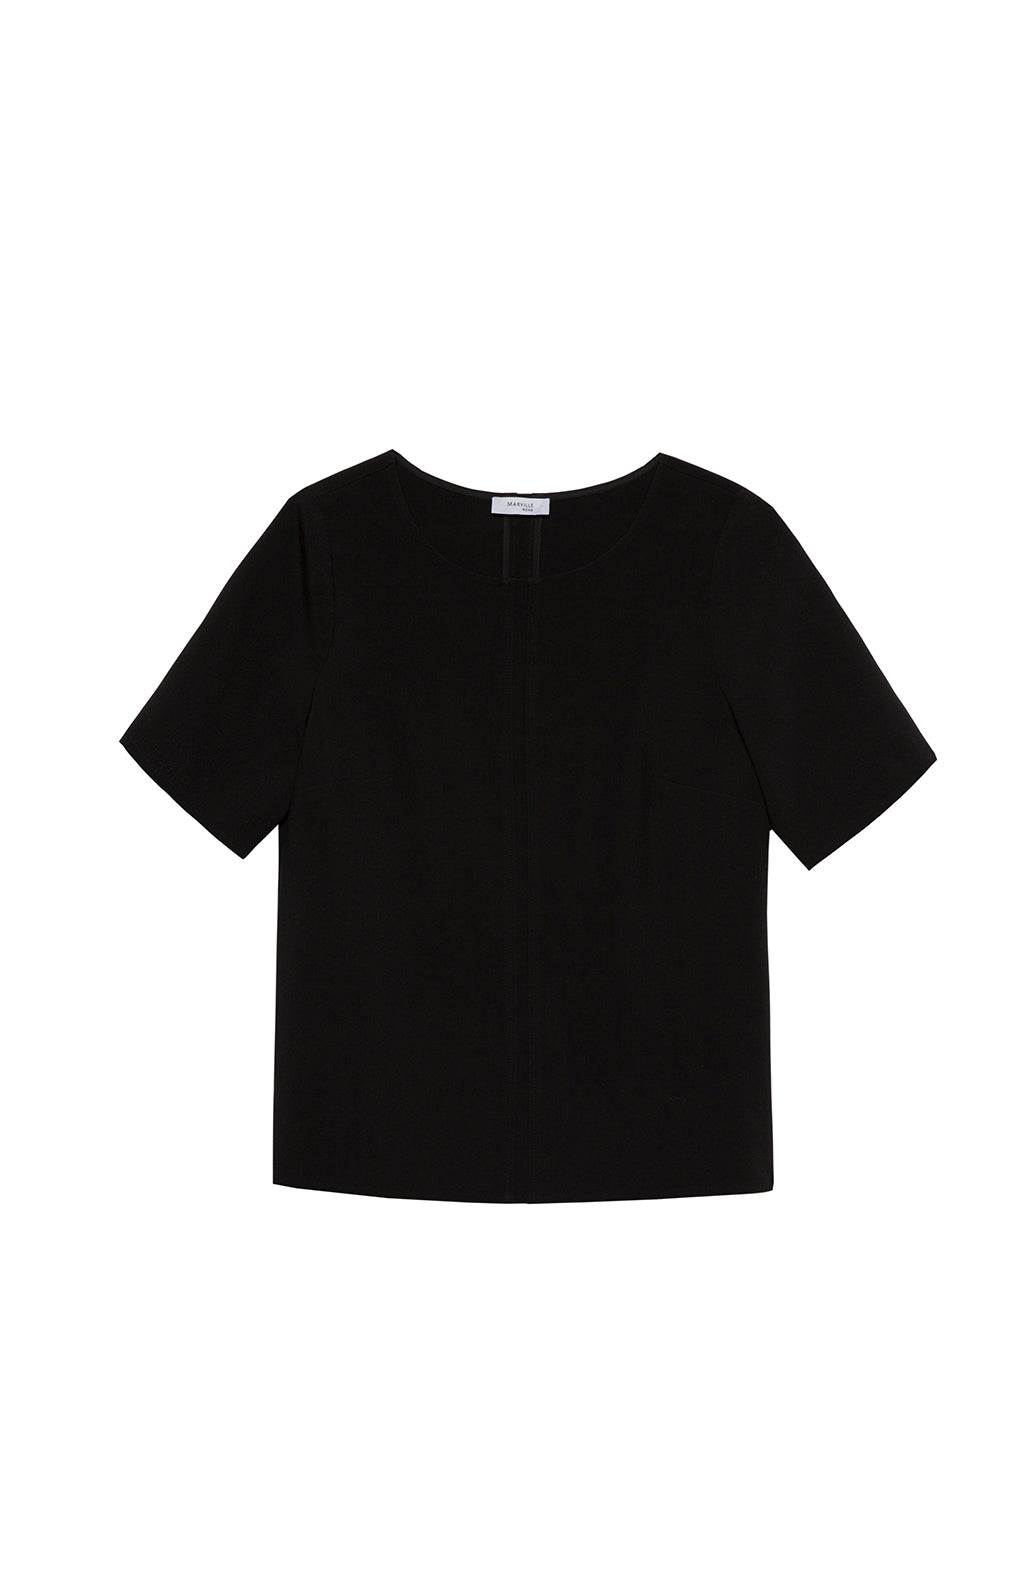 Thelma Jersey Top